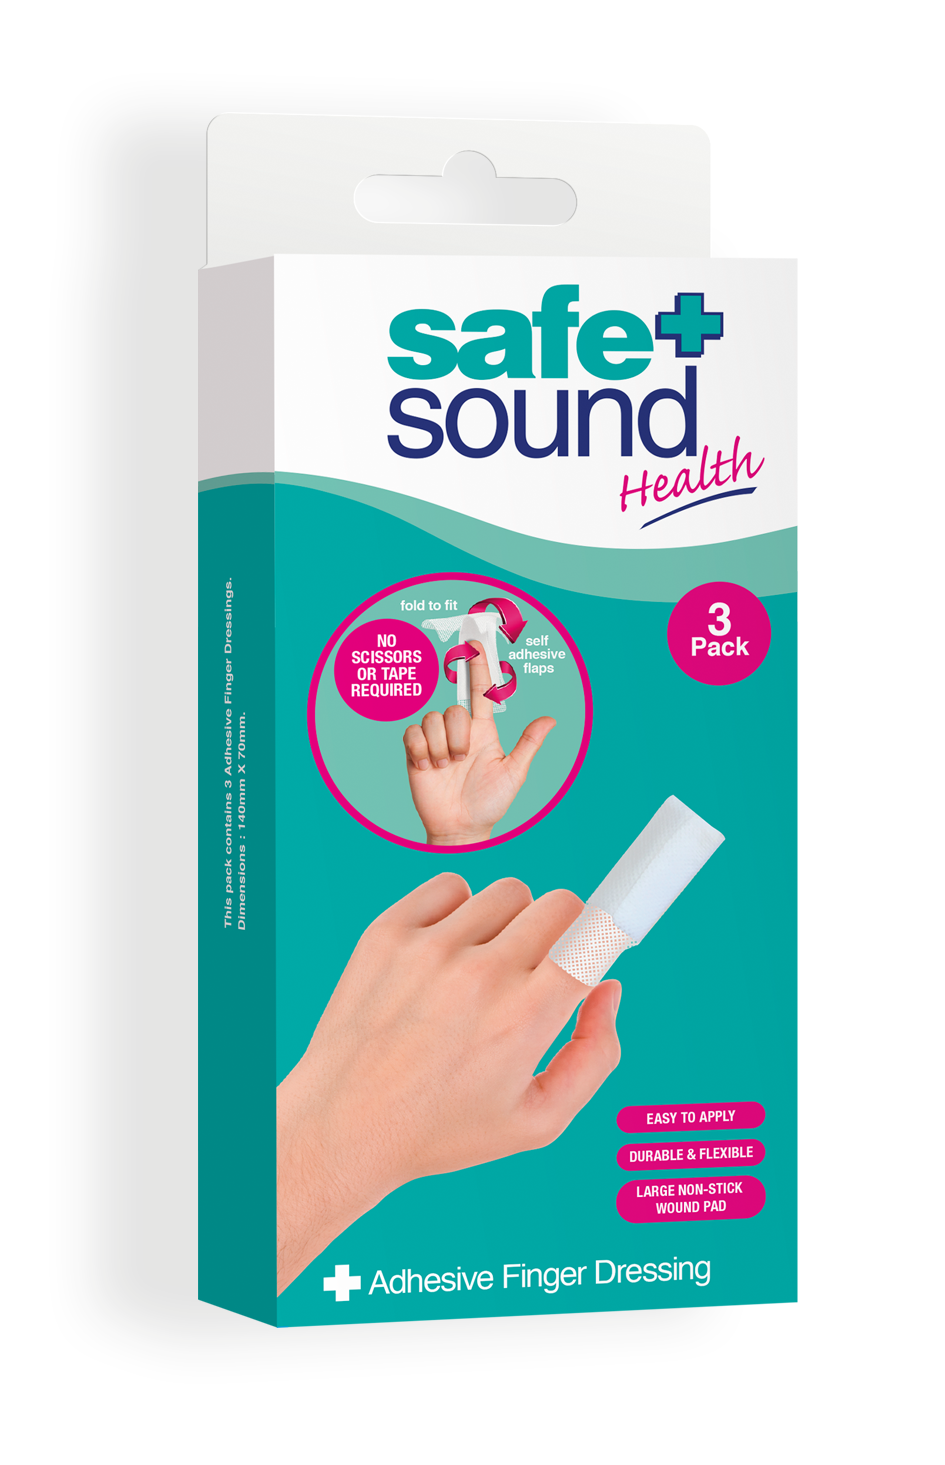 Safe and Sound Health Adhesive Finger Dressing